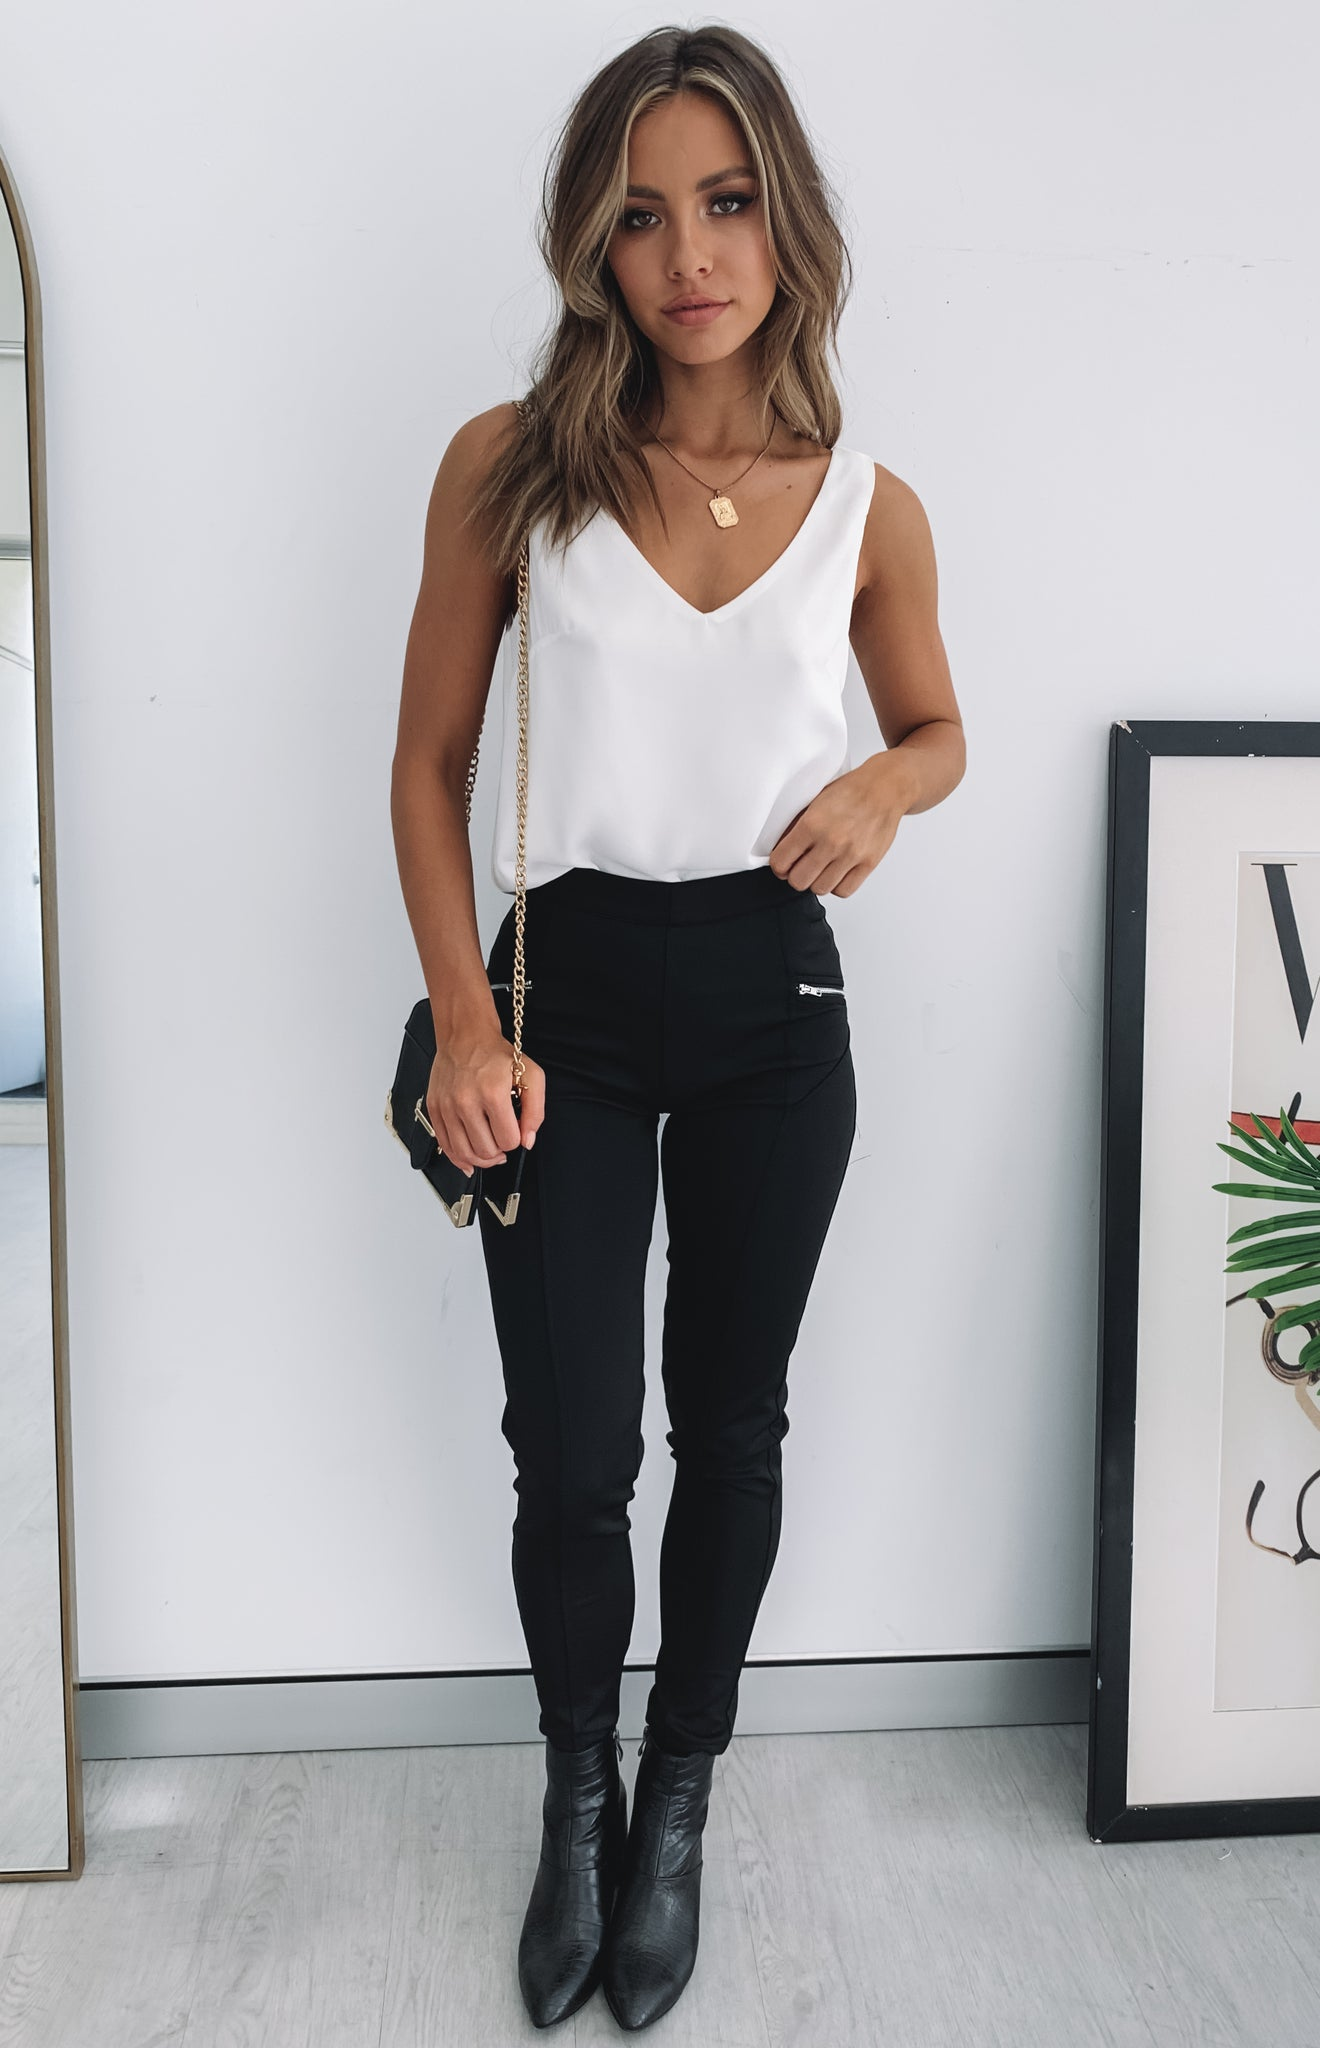 https://files.beginningboutique.com.au/The+Hunt+Party+Pants+Black.mp4